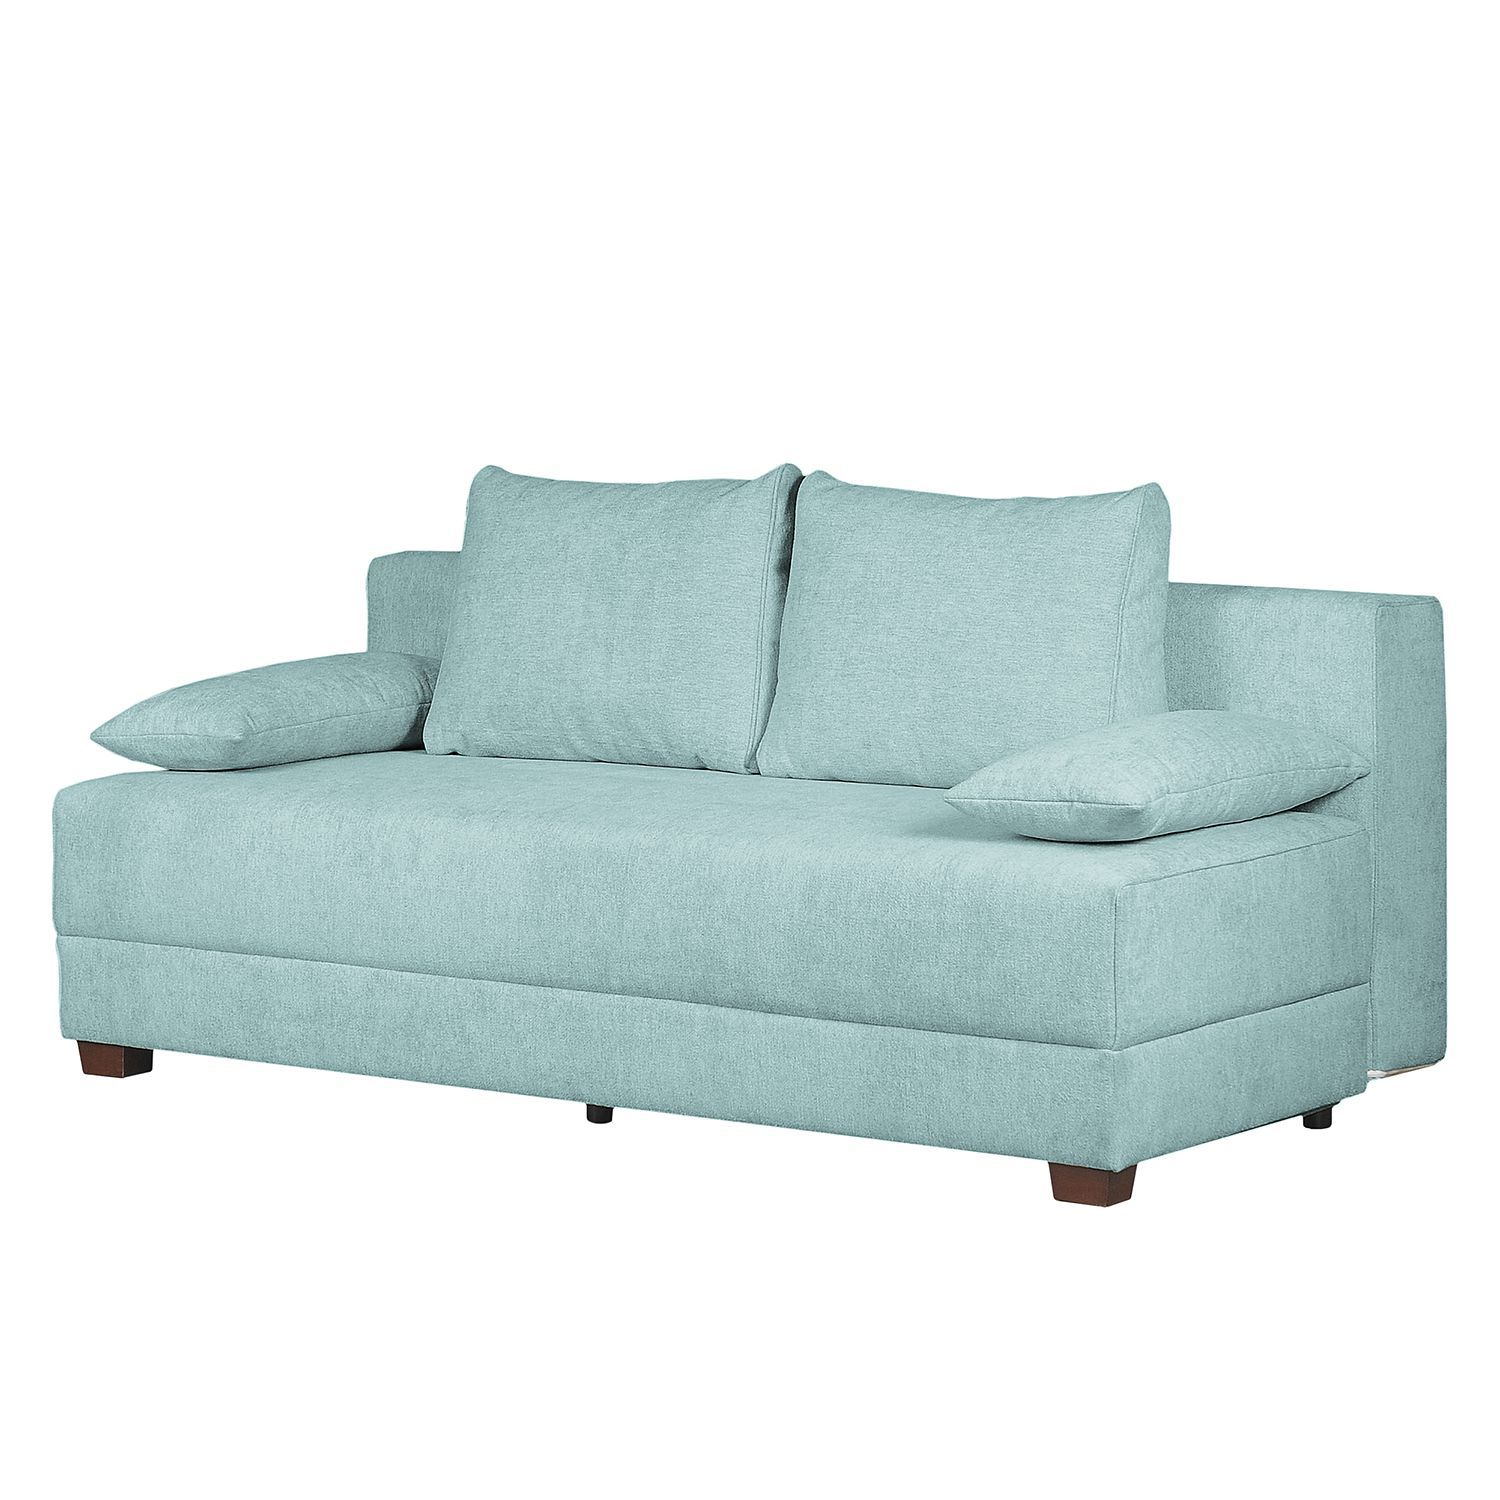 Home24 Schlafsofa Pin By Ladendirekt On Sofas Couches Tops